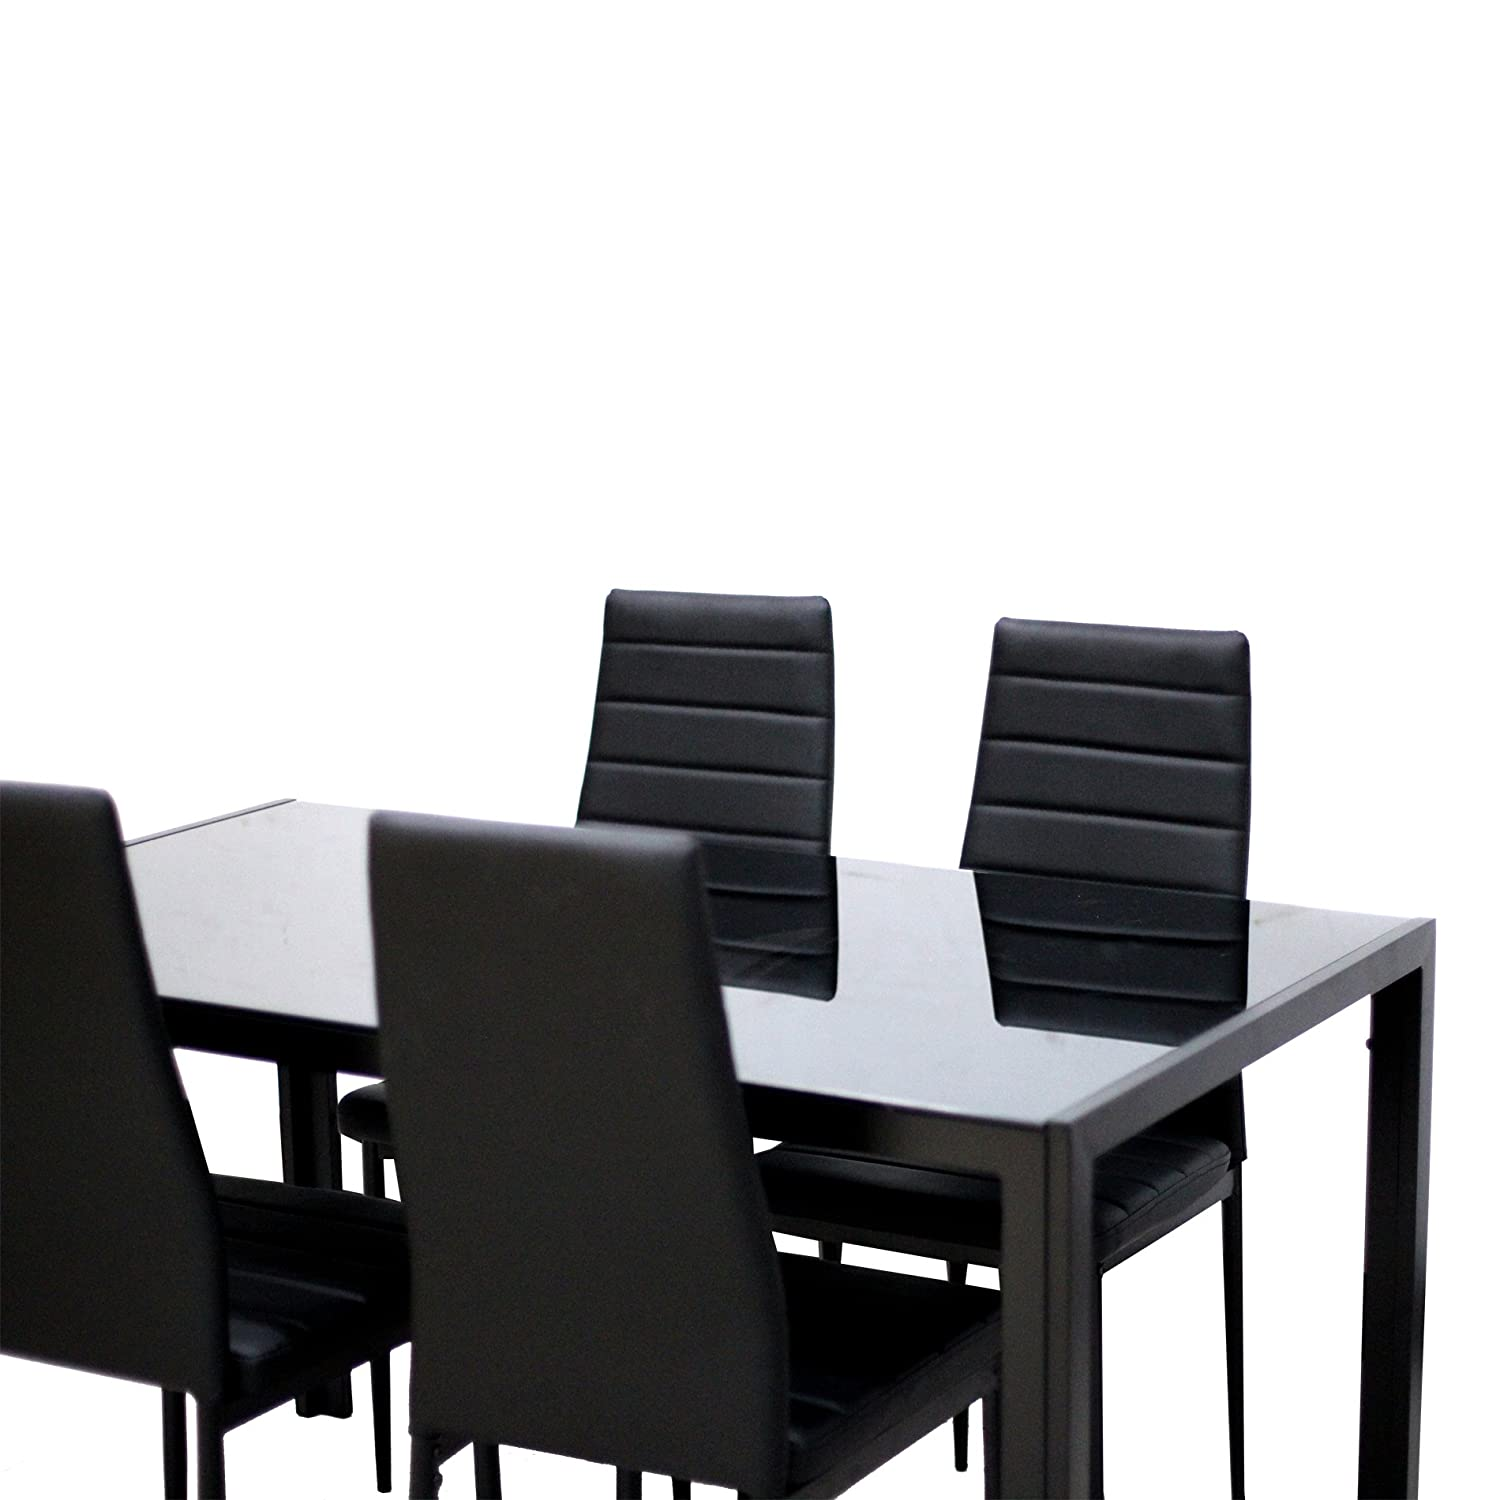 full black ties size chairs set pads indoor room dining with large chair gray oversized cushions top x of